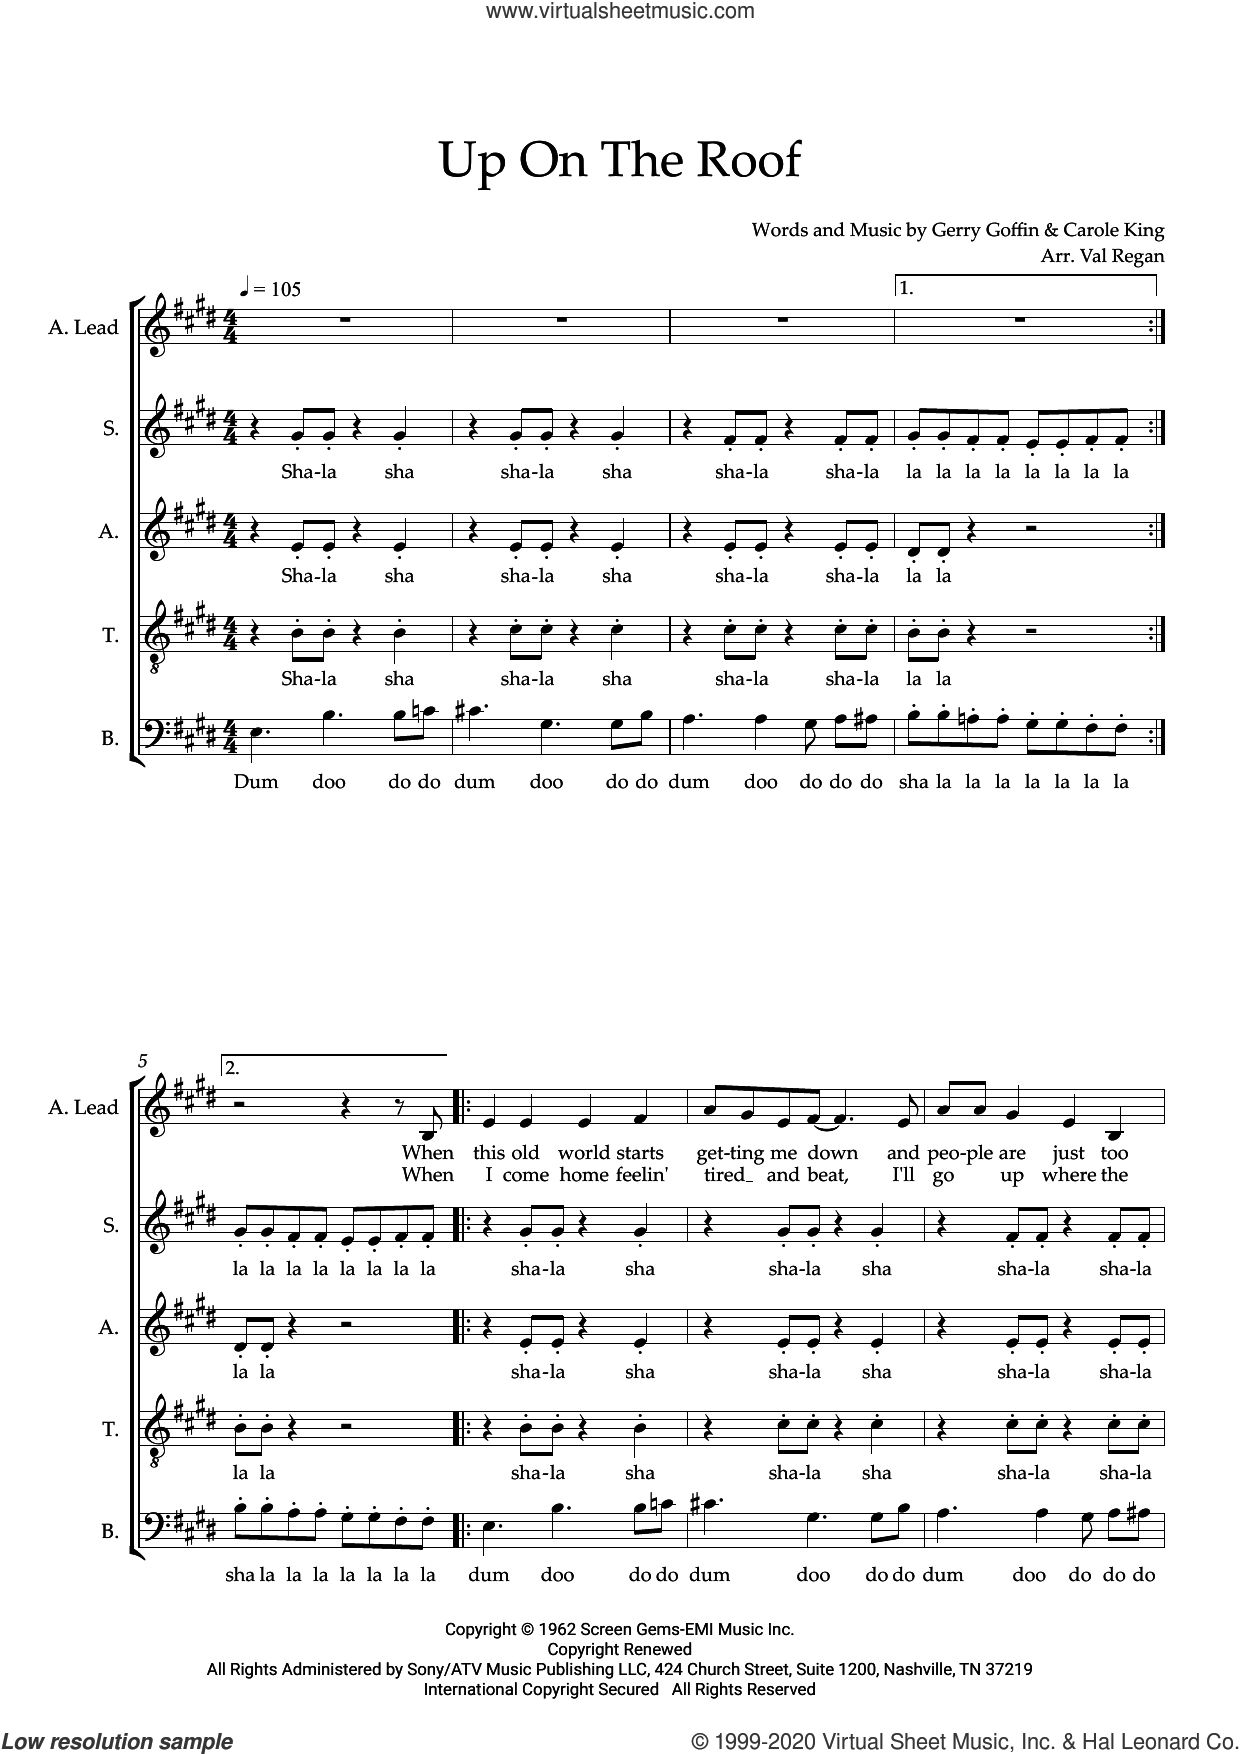 Up On the Roof (arr. Val Regan) sheet music for choir (SATB: soprano, alto, tenor, bass) by The Drifters, Val Regan, Carole King and Gerry Goffin, intermediate skill level